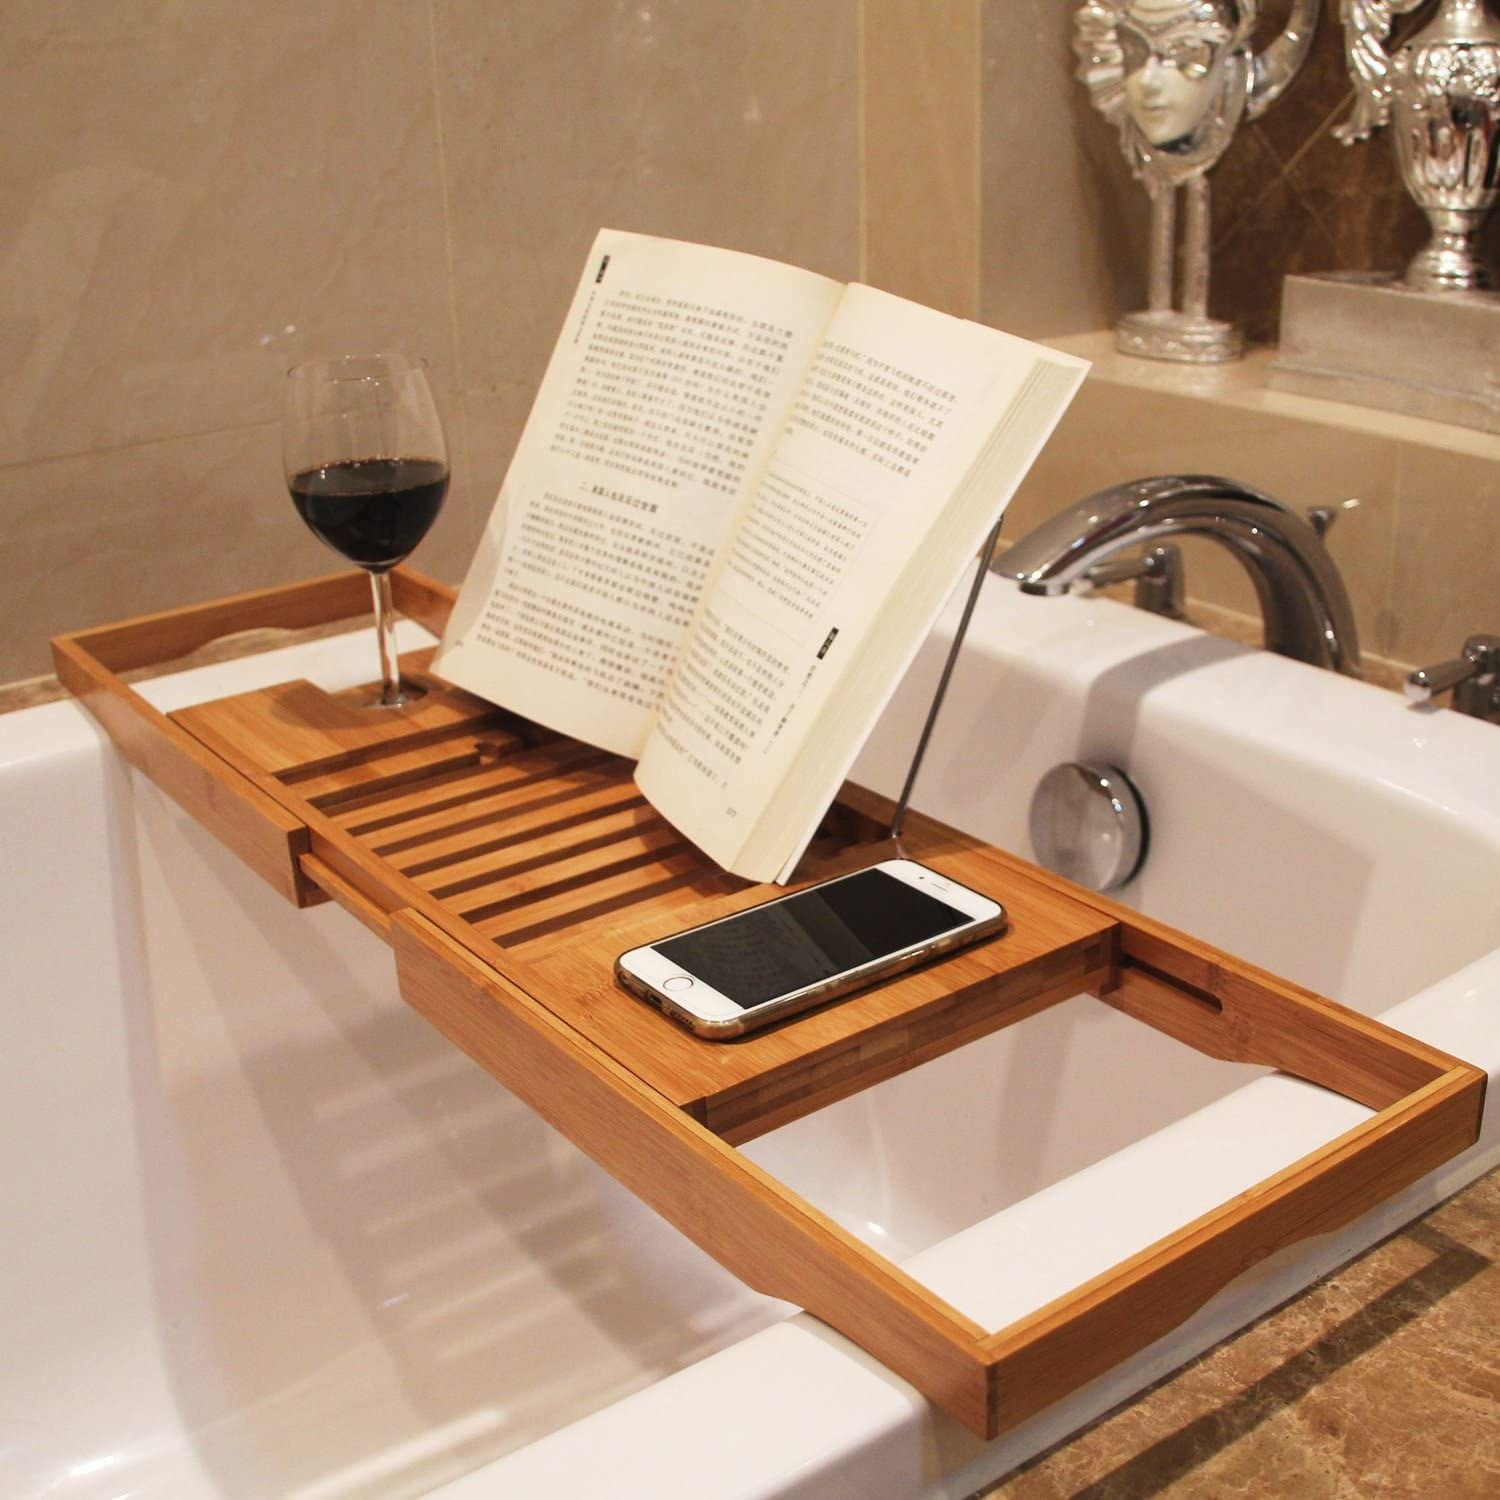 A bath caddy spread over a tub with a special spot for a wine glass a book being propped up and a phone